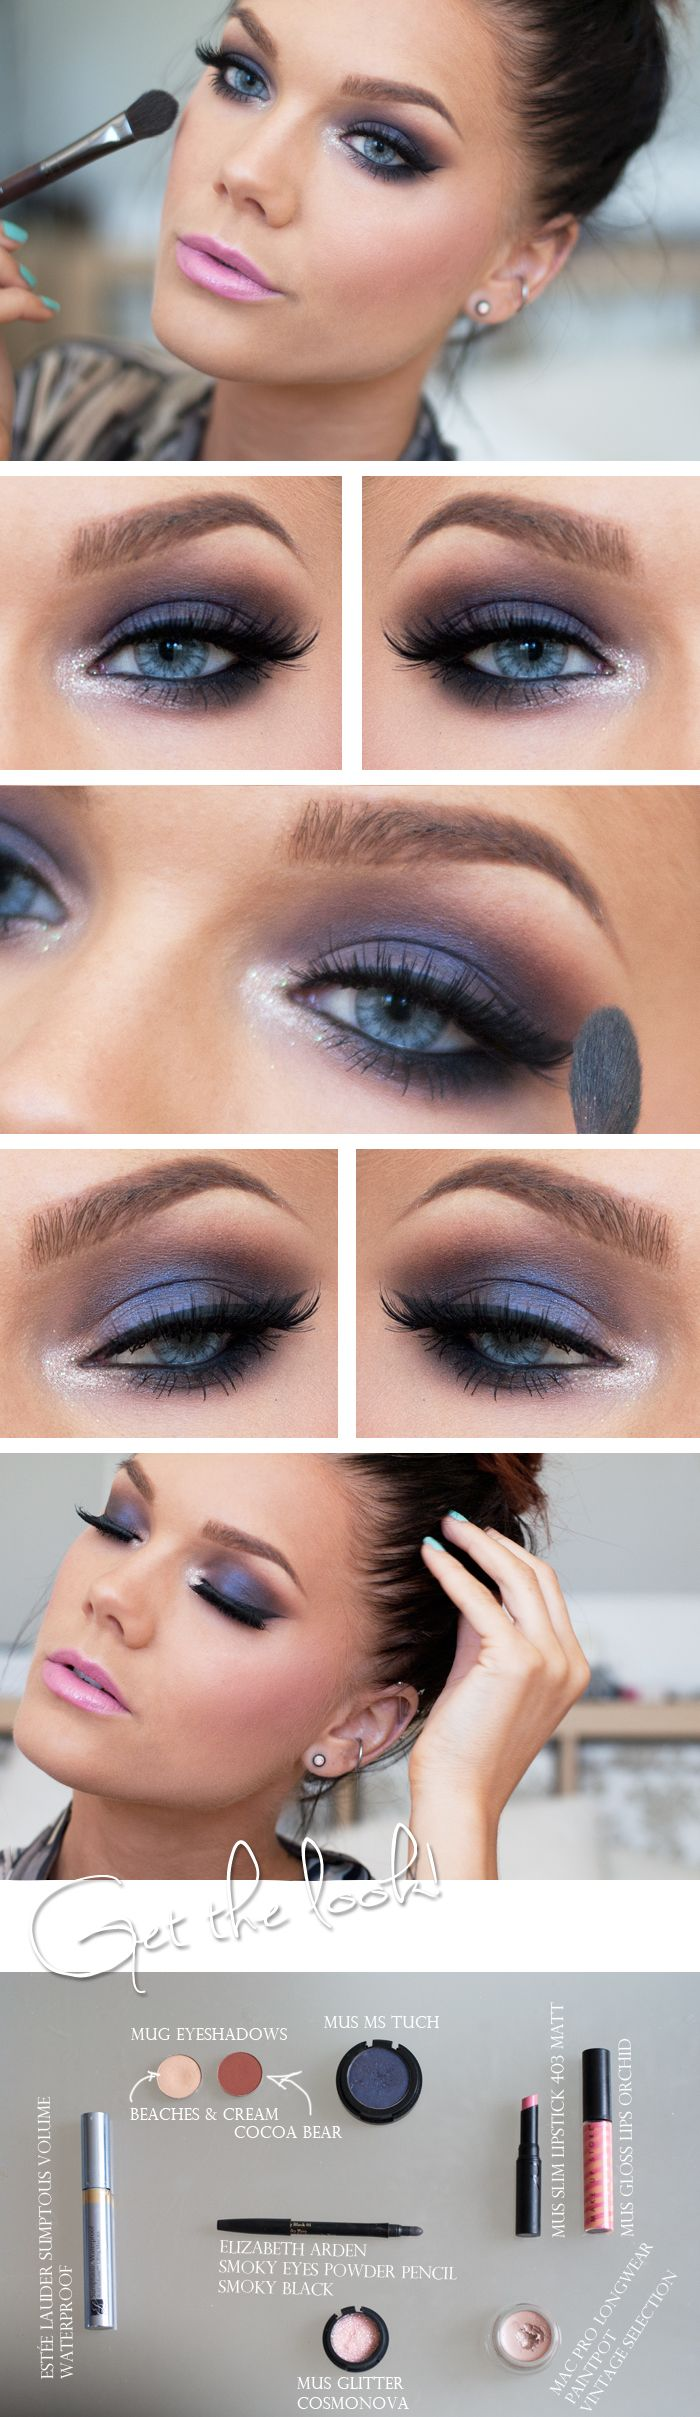 deep violet bordering on blue, smoked out to perfection with a hint of glitter in inner eye and a bright pink lip